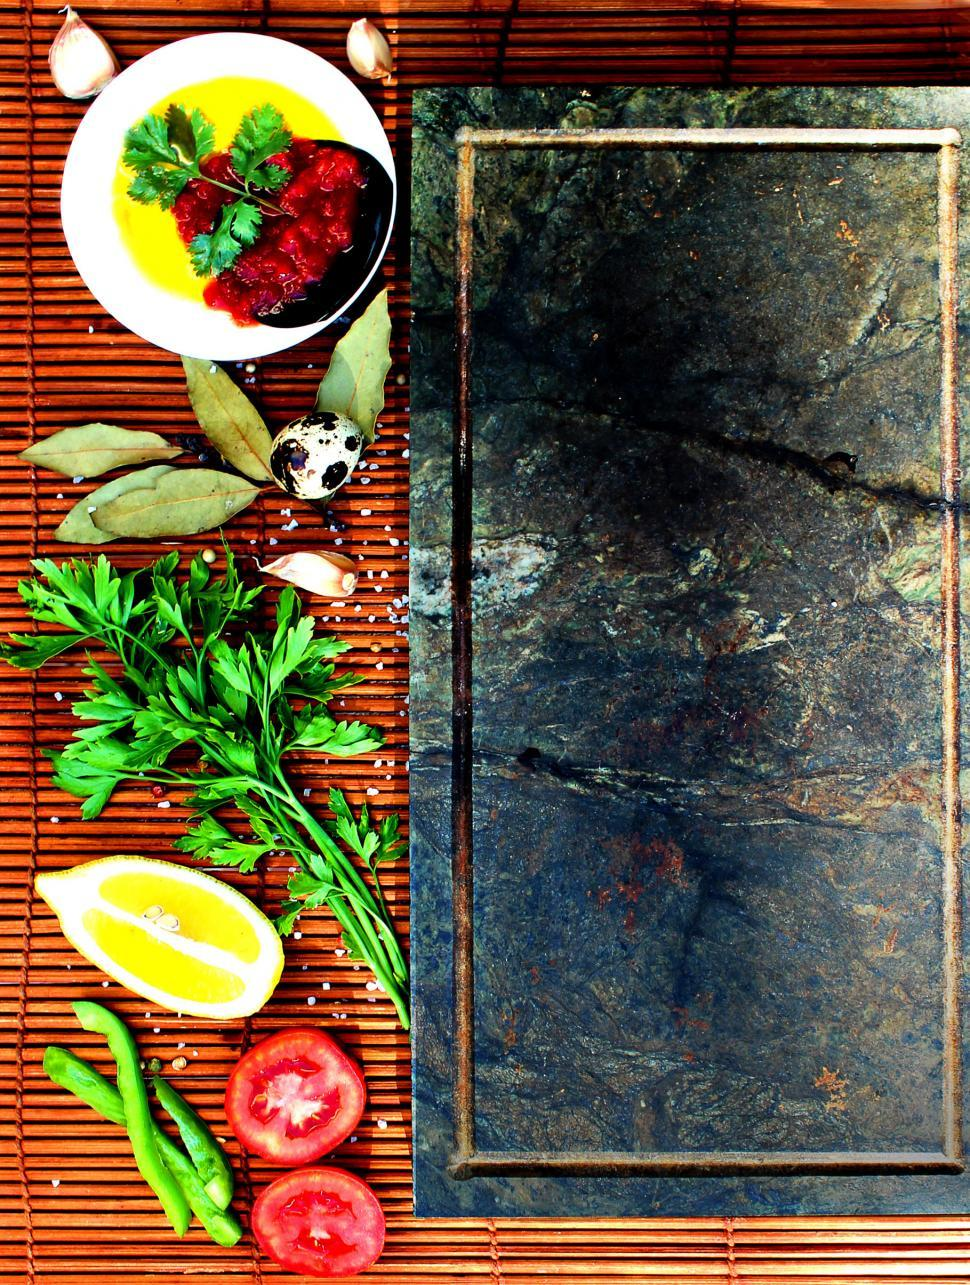 Download Free Stock HD Photo of Basic mediterranean style cooking ingredients on straw Online